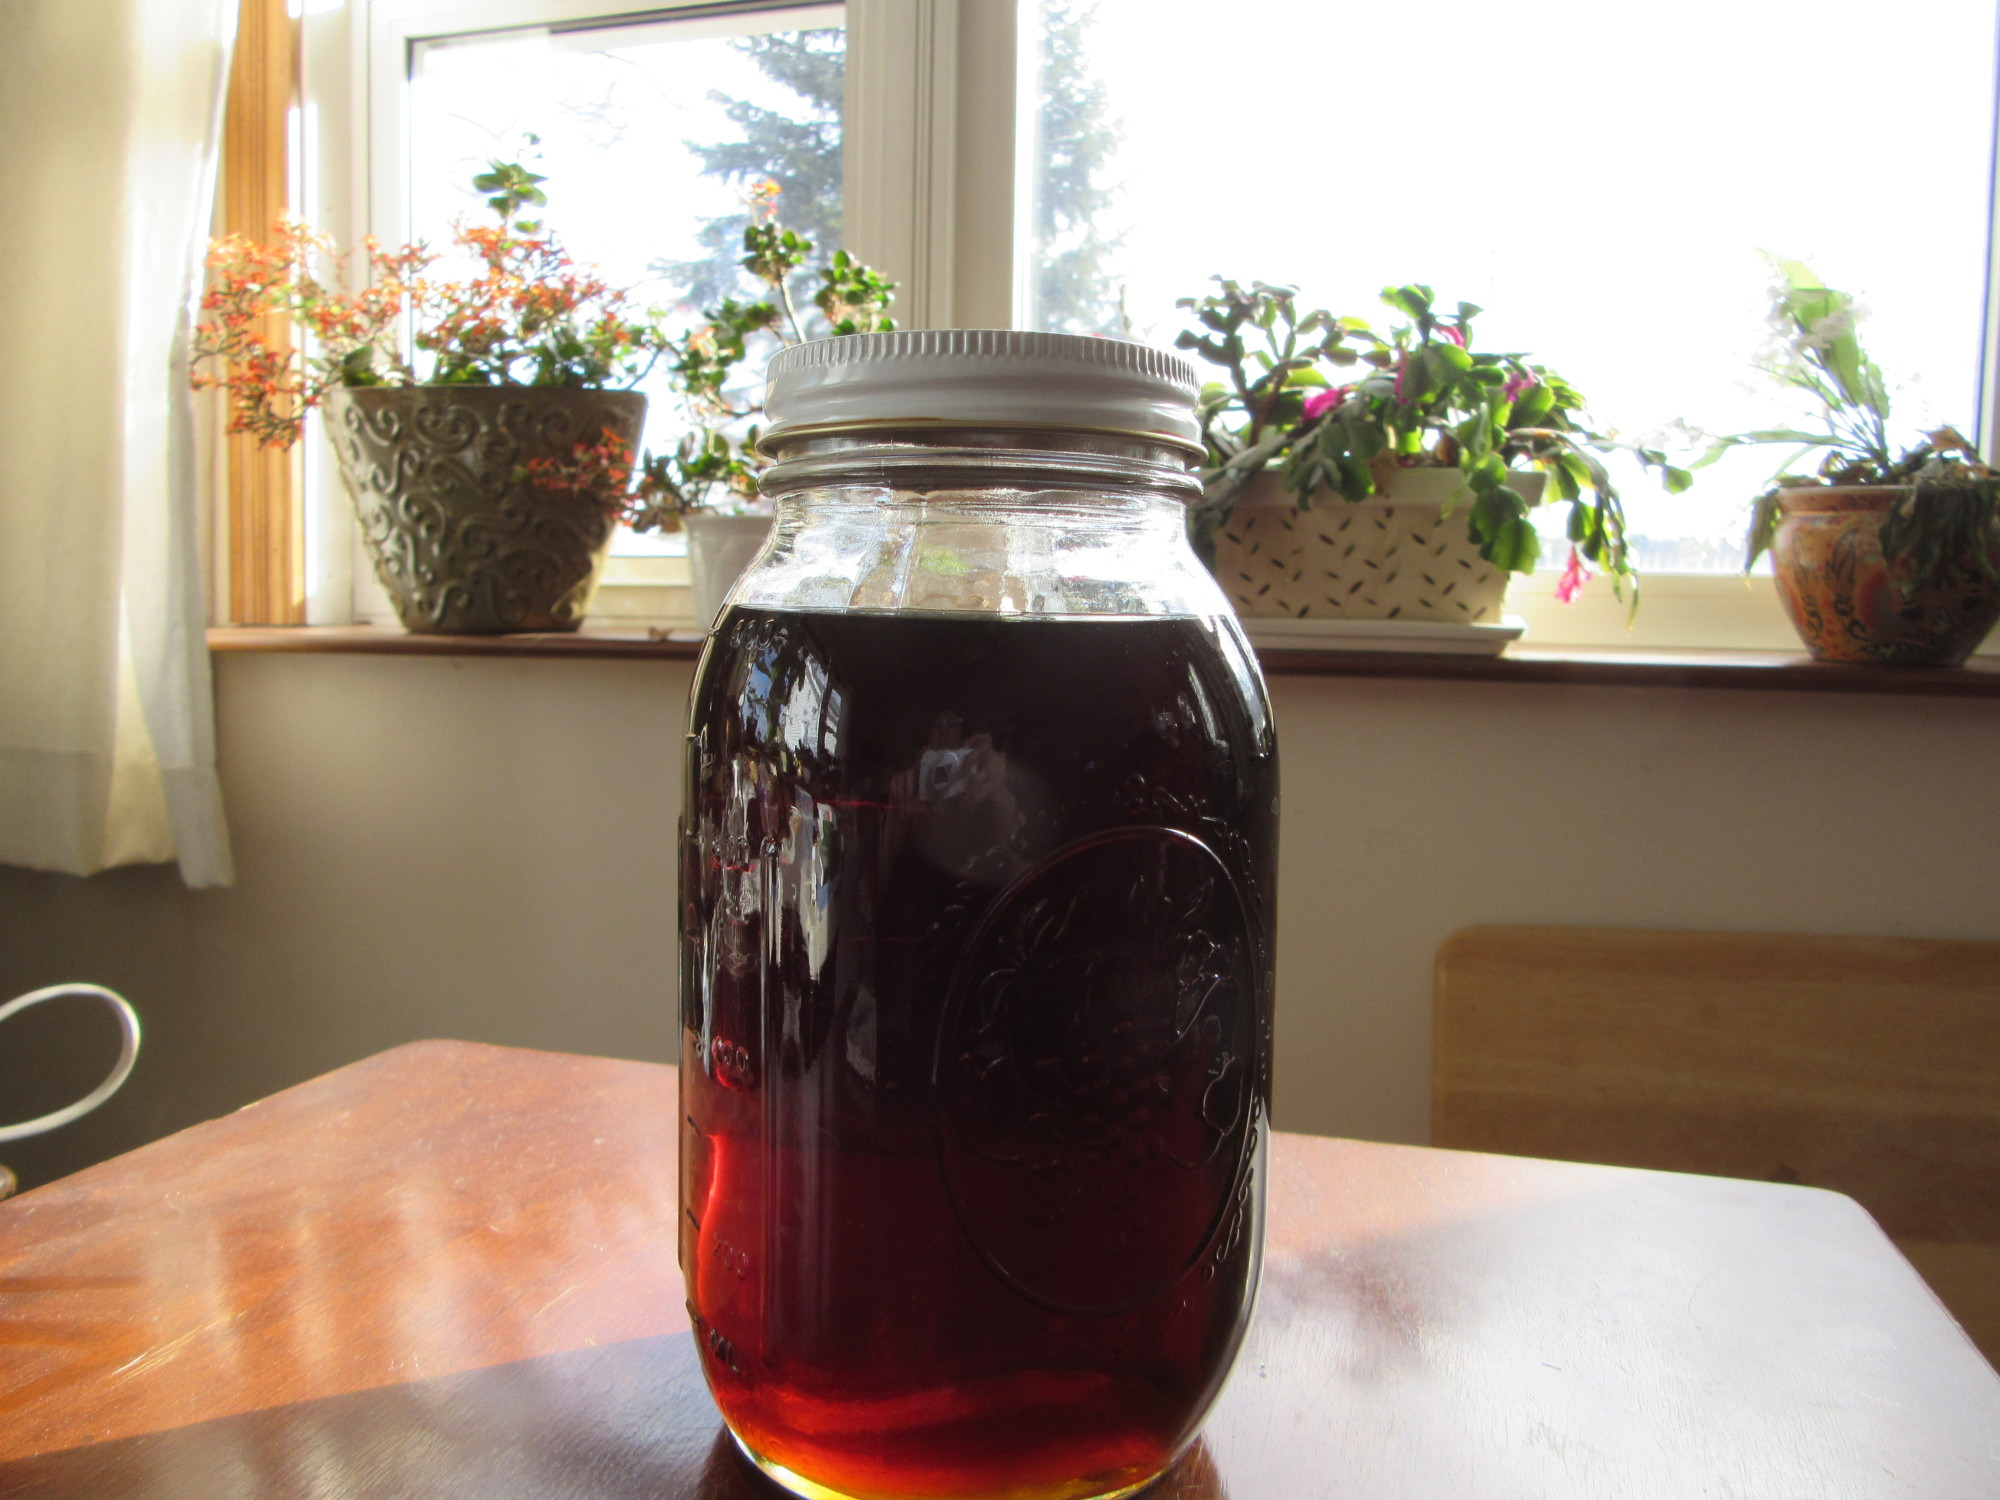 First sap run finished - just over 4 gallons of syrup, a little darker than usual first run.